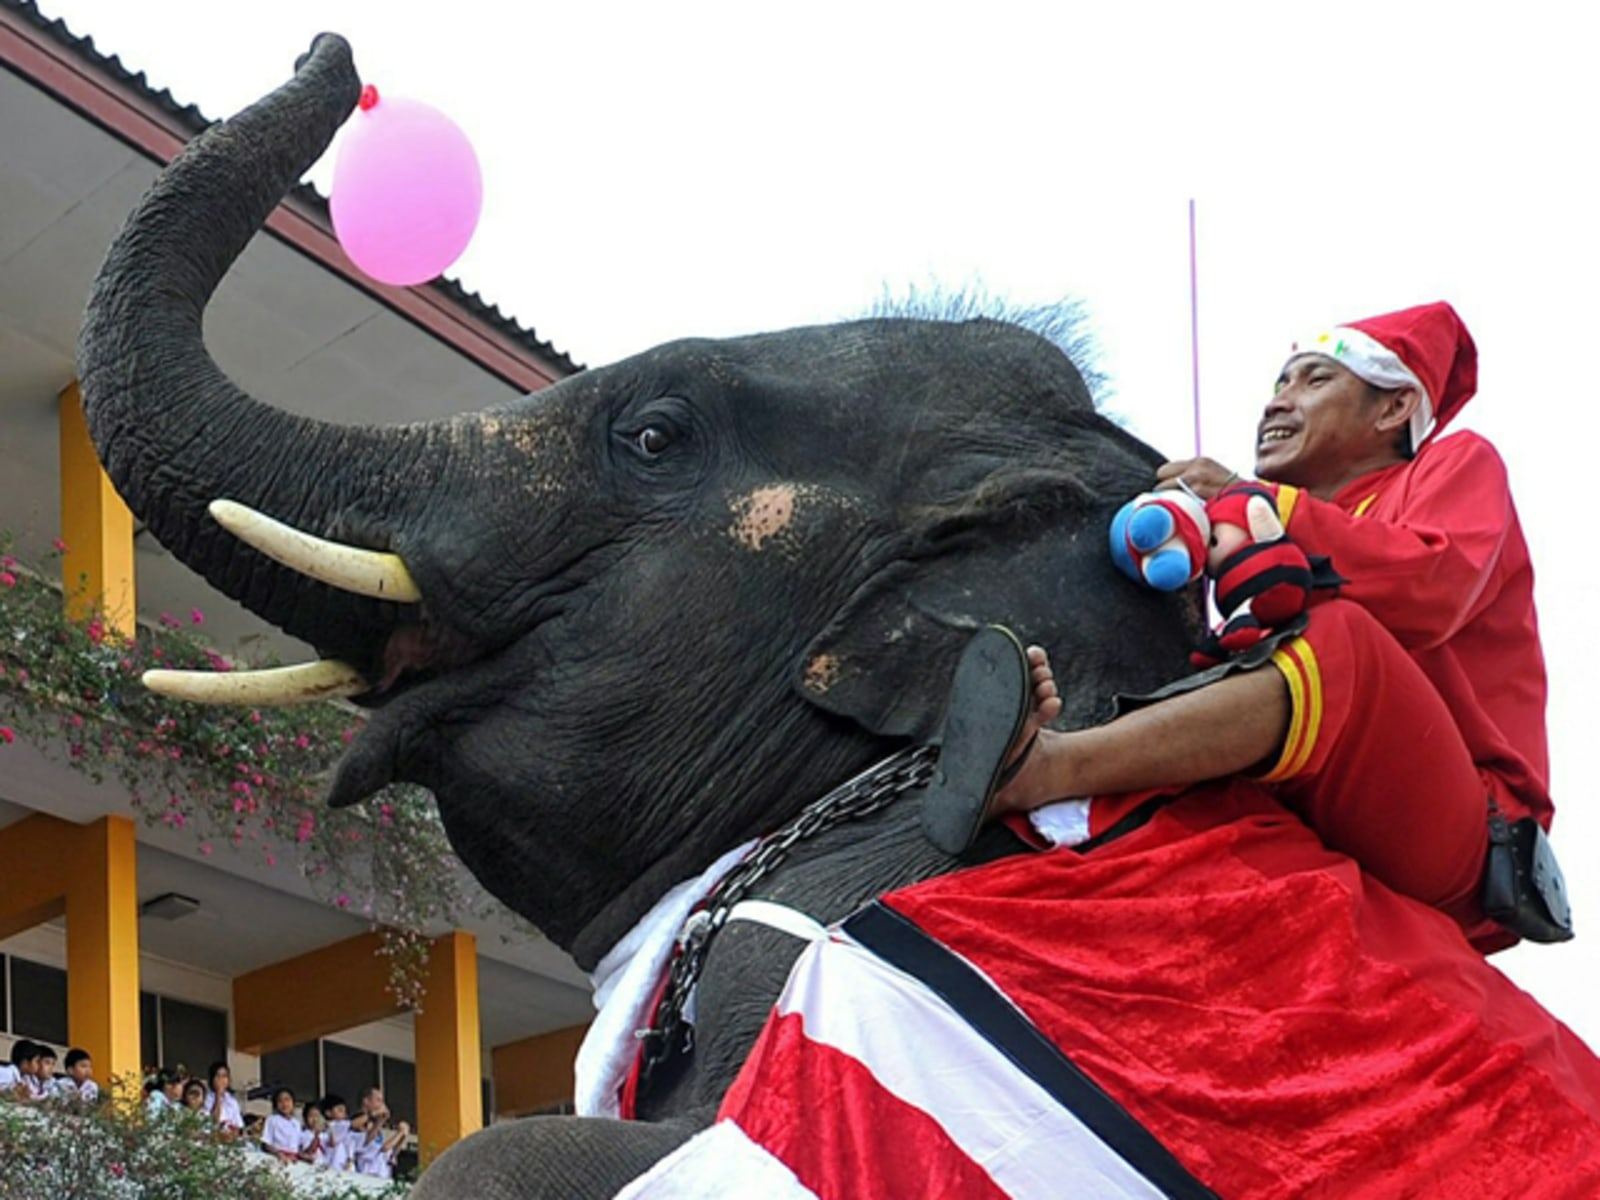 Image: An elephant dressed in a Santa Claus cos